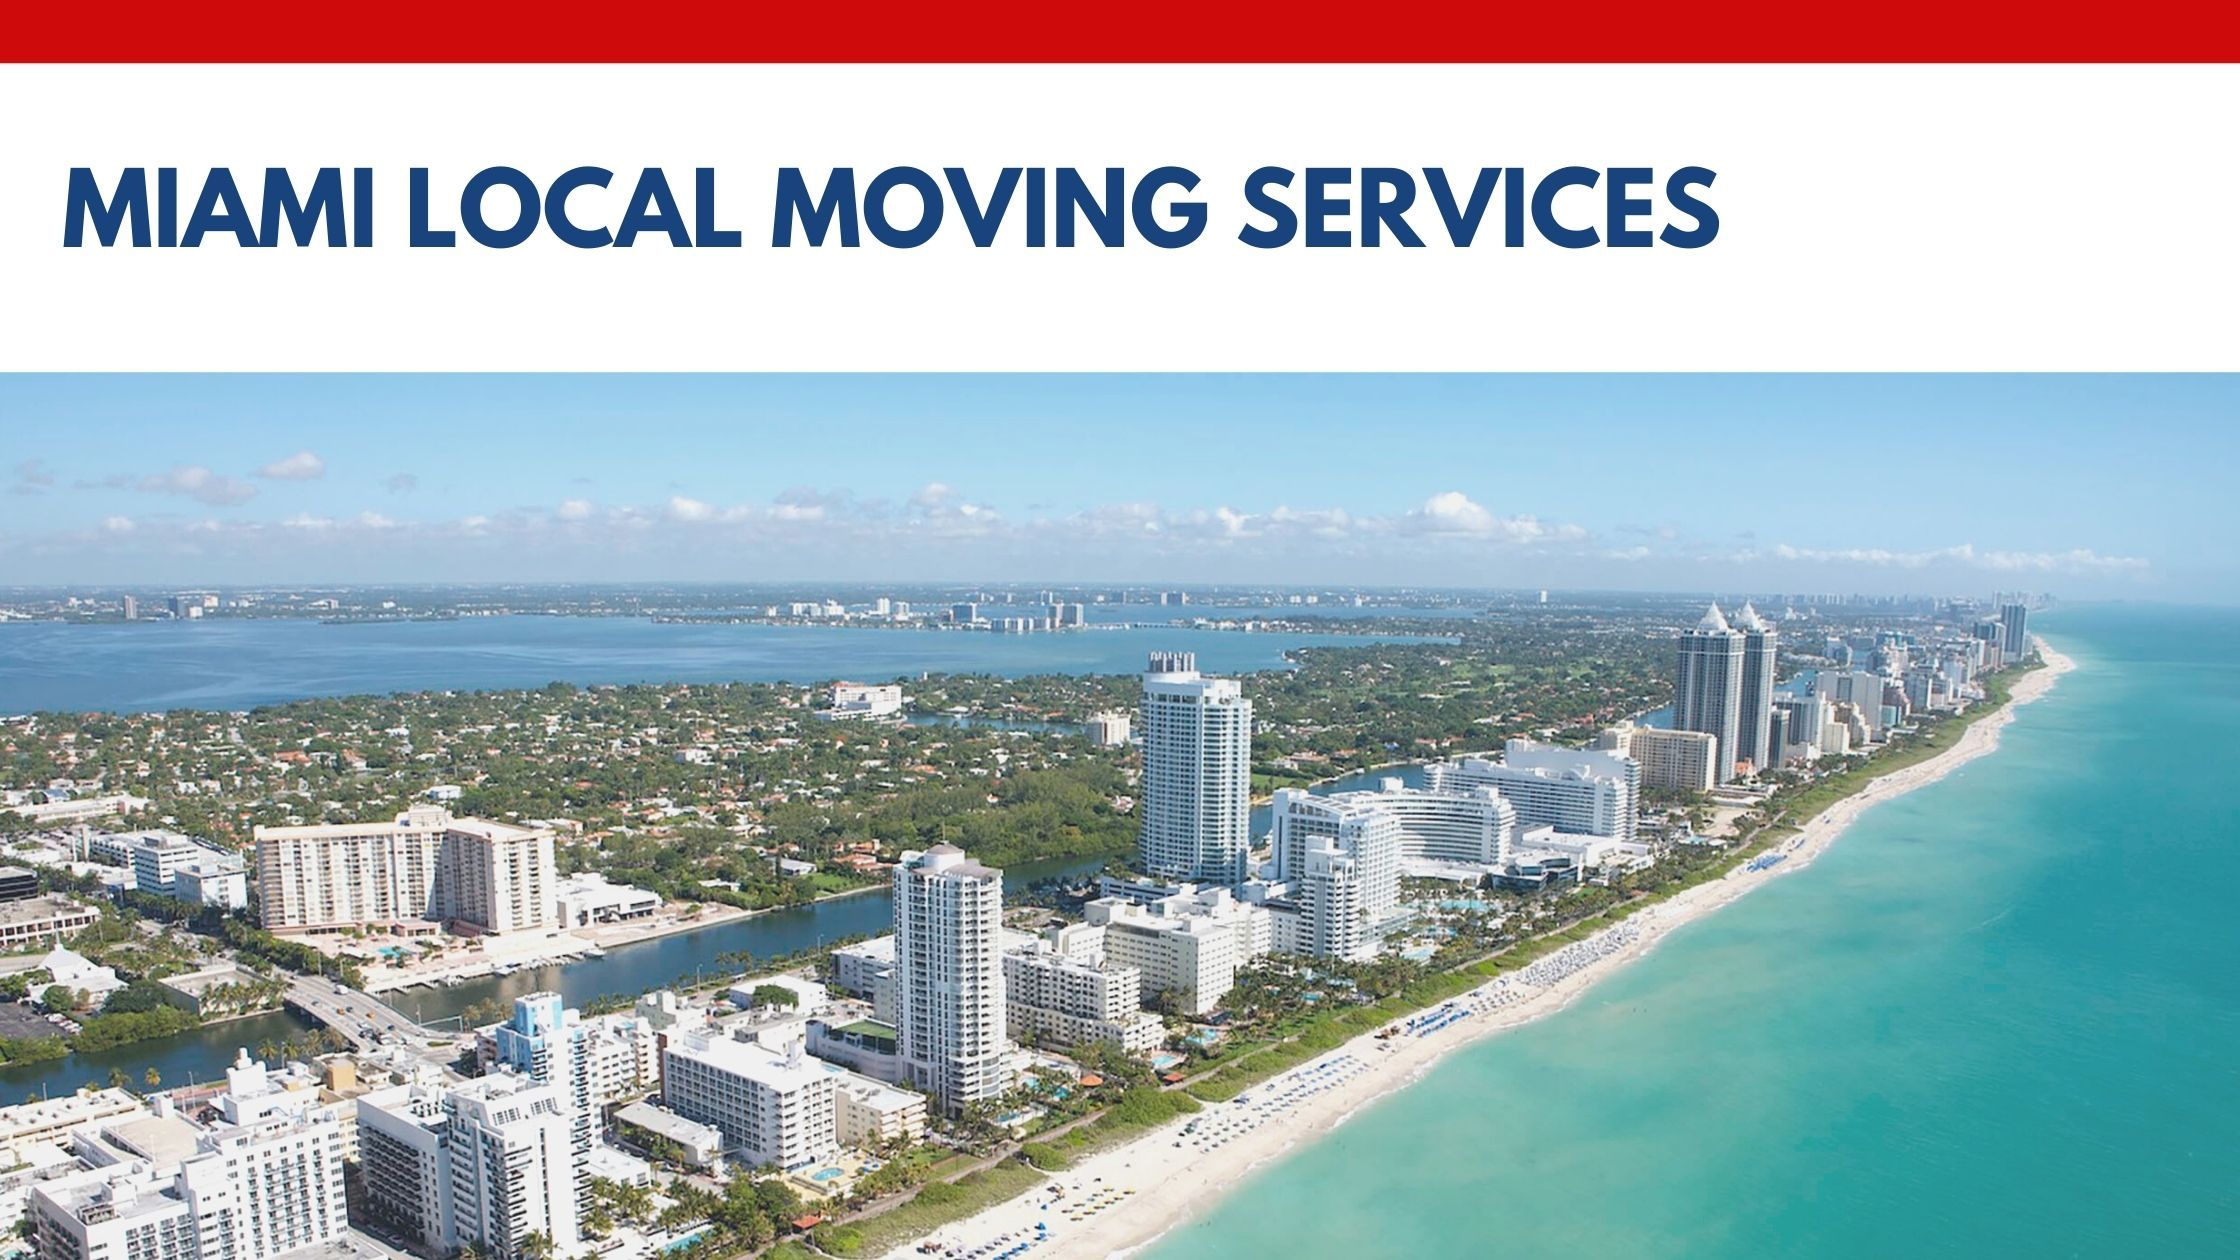 Miami Local Moving Services